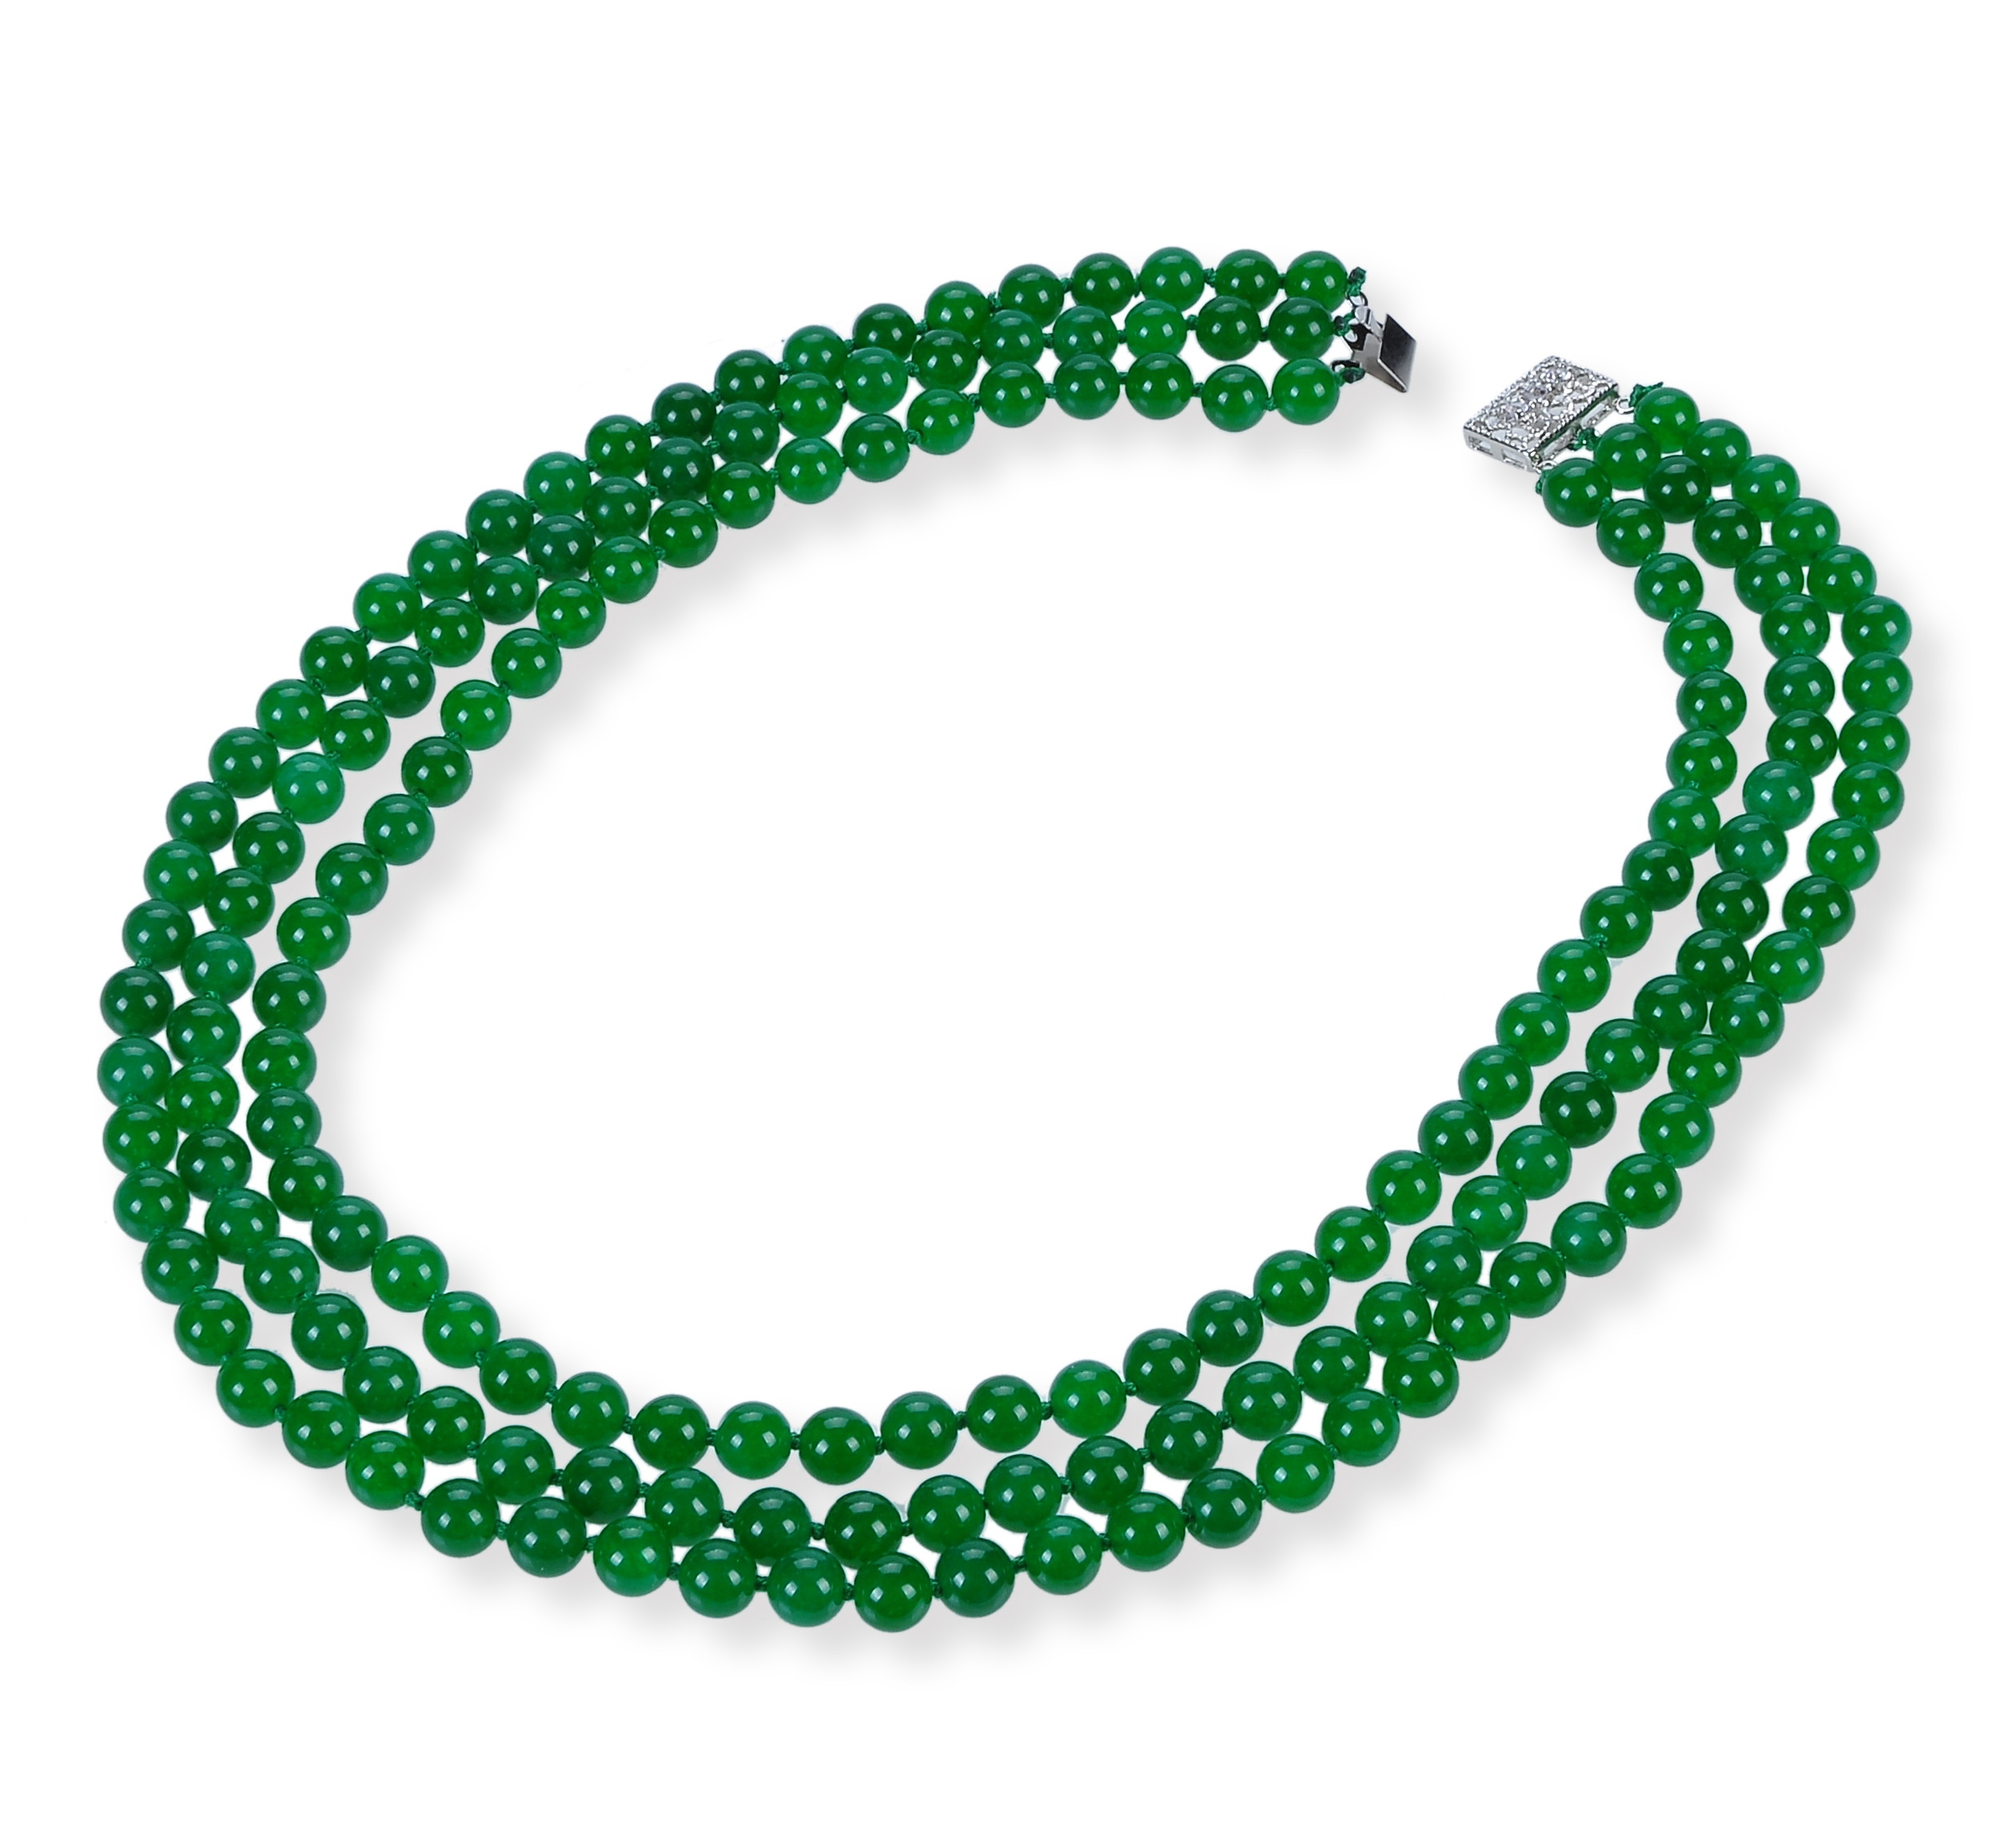 8mm Three Row Green Round Malay Jade Necklace -nk-jd5